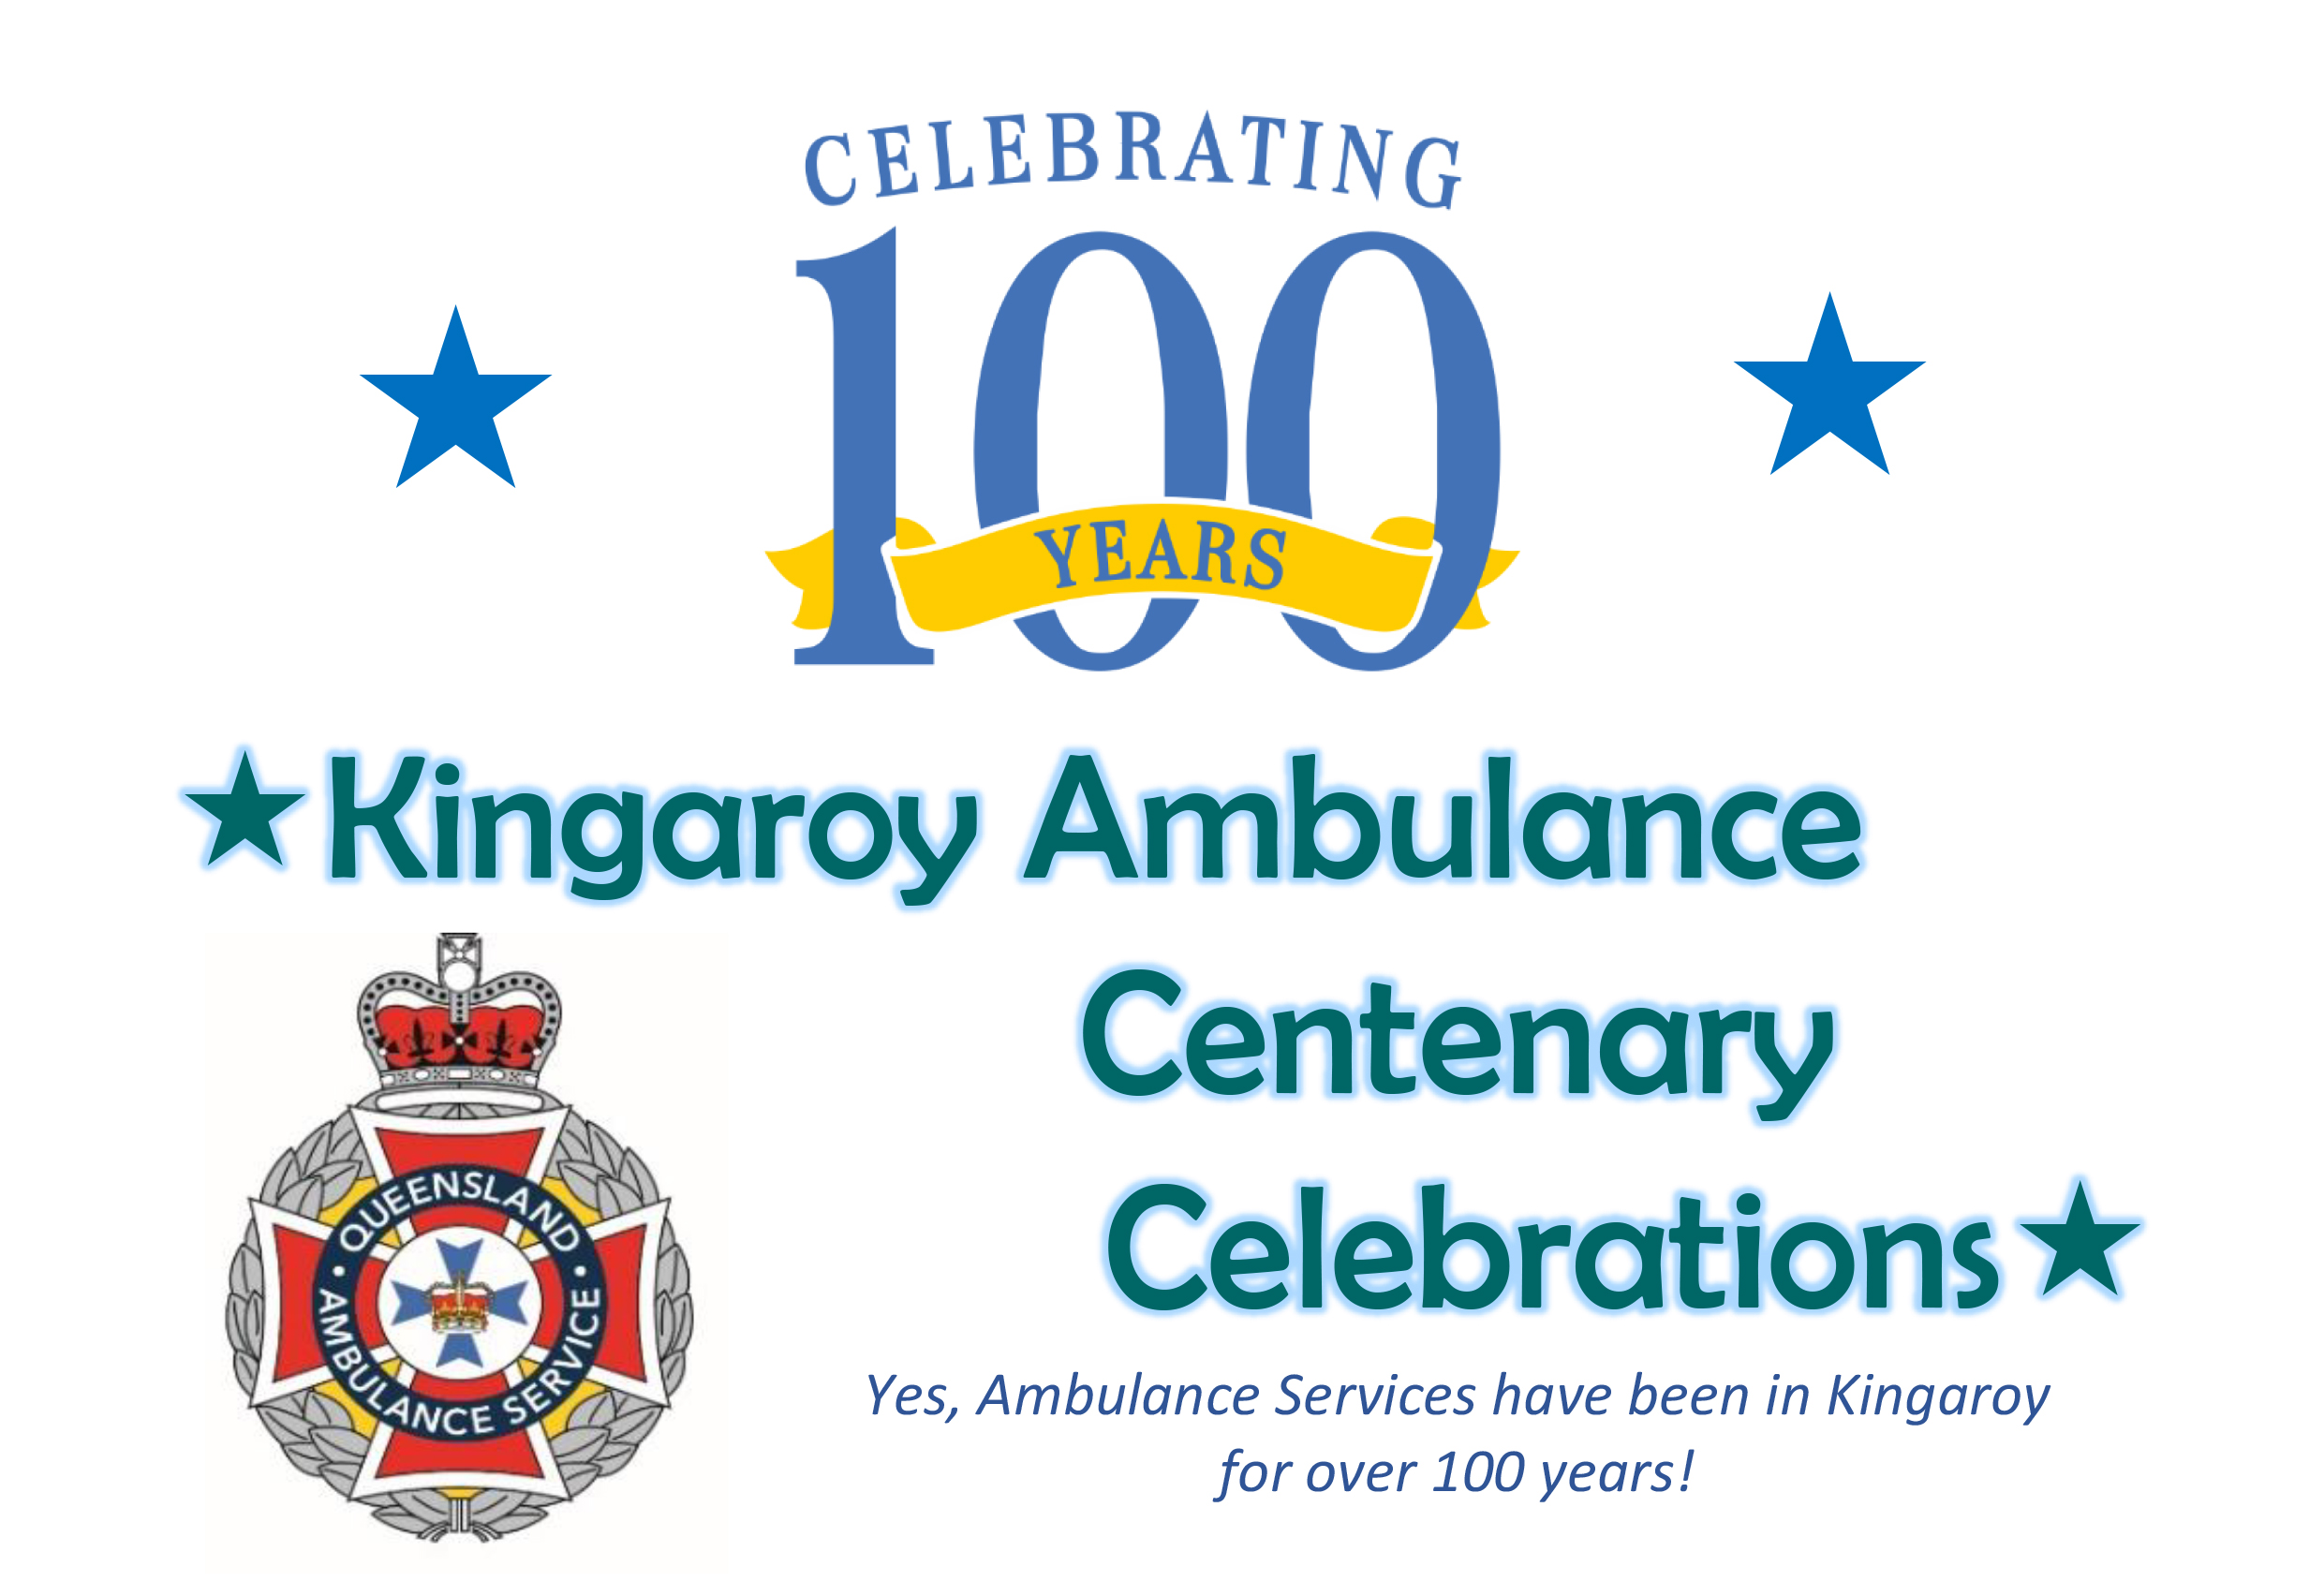 Kingaroy Ambulance Centenary Celebrations